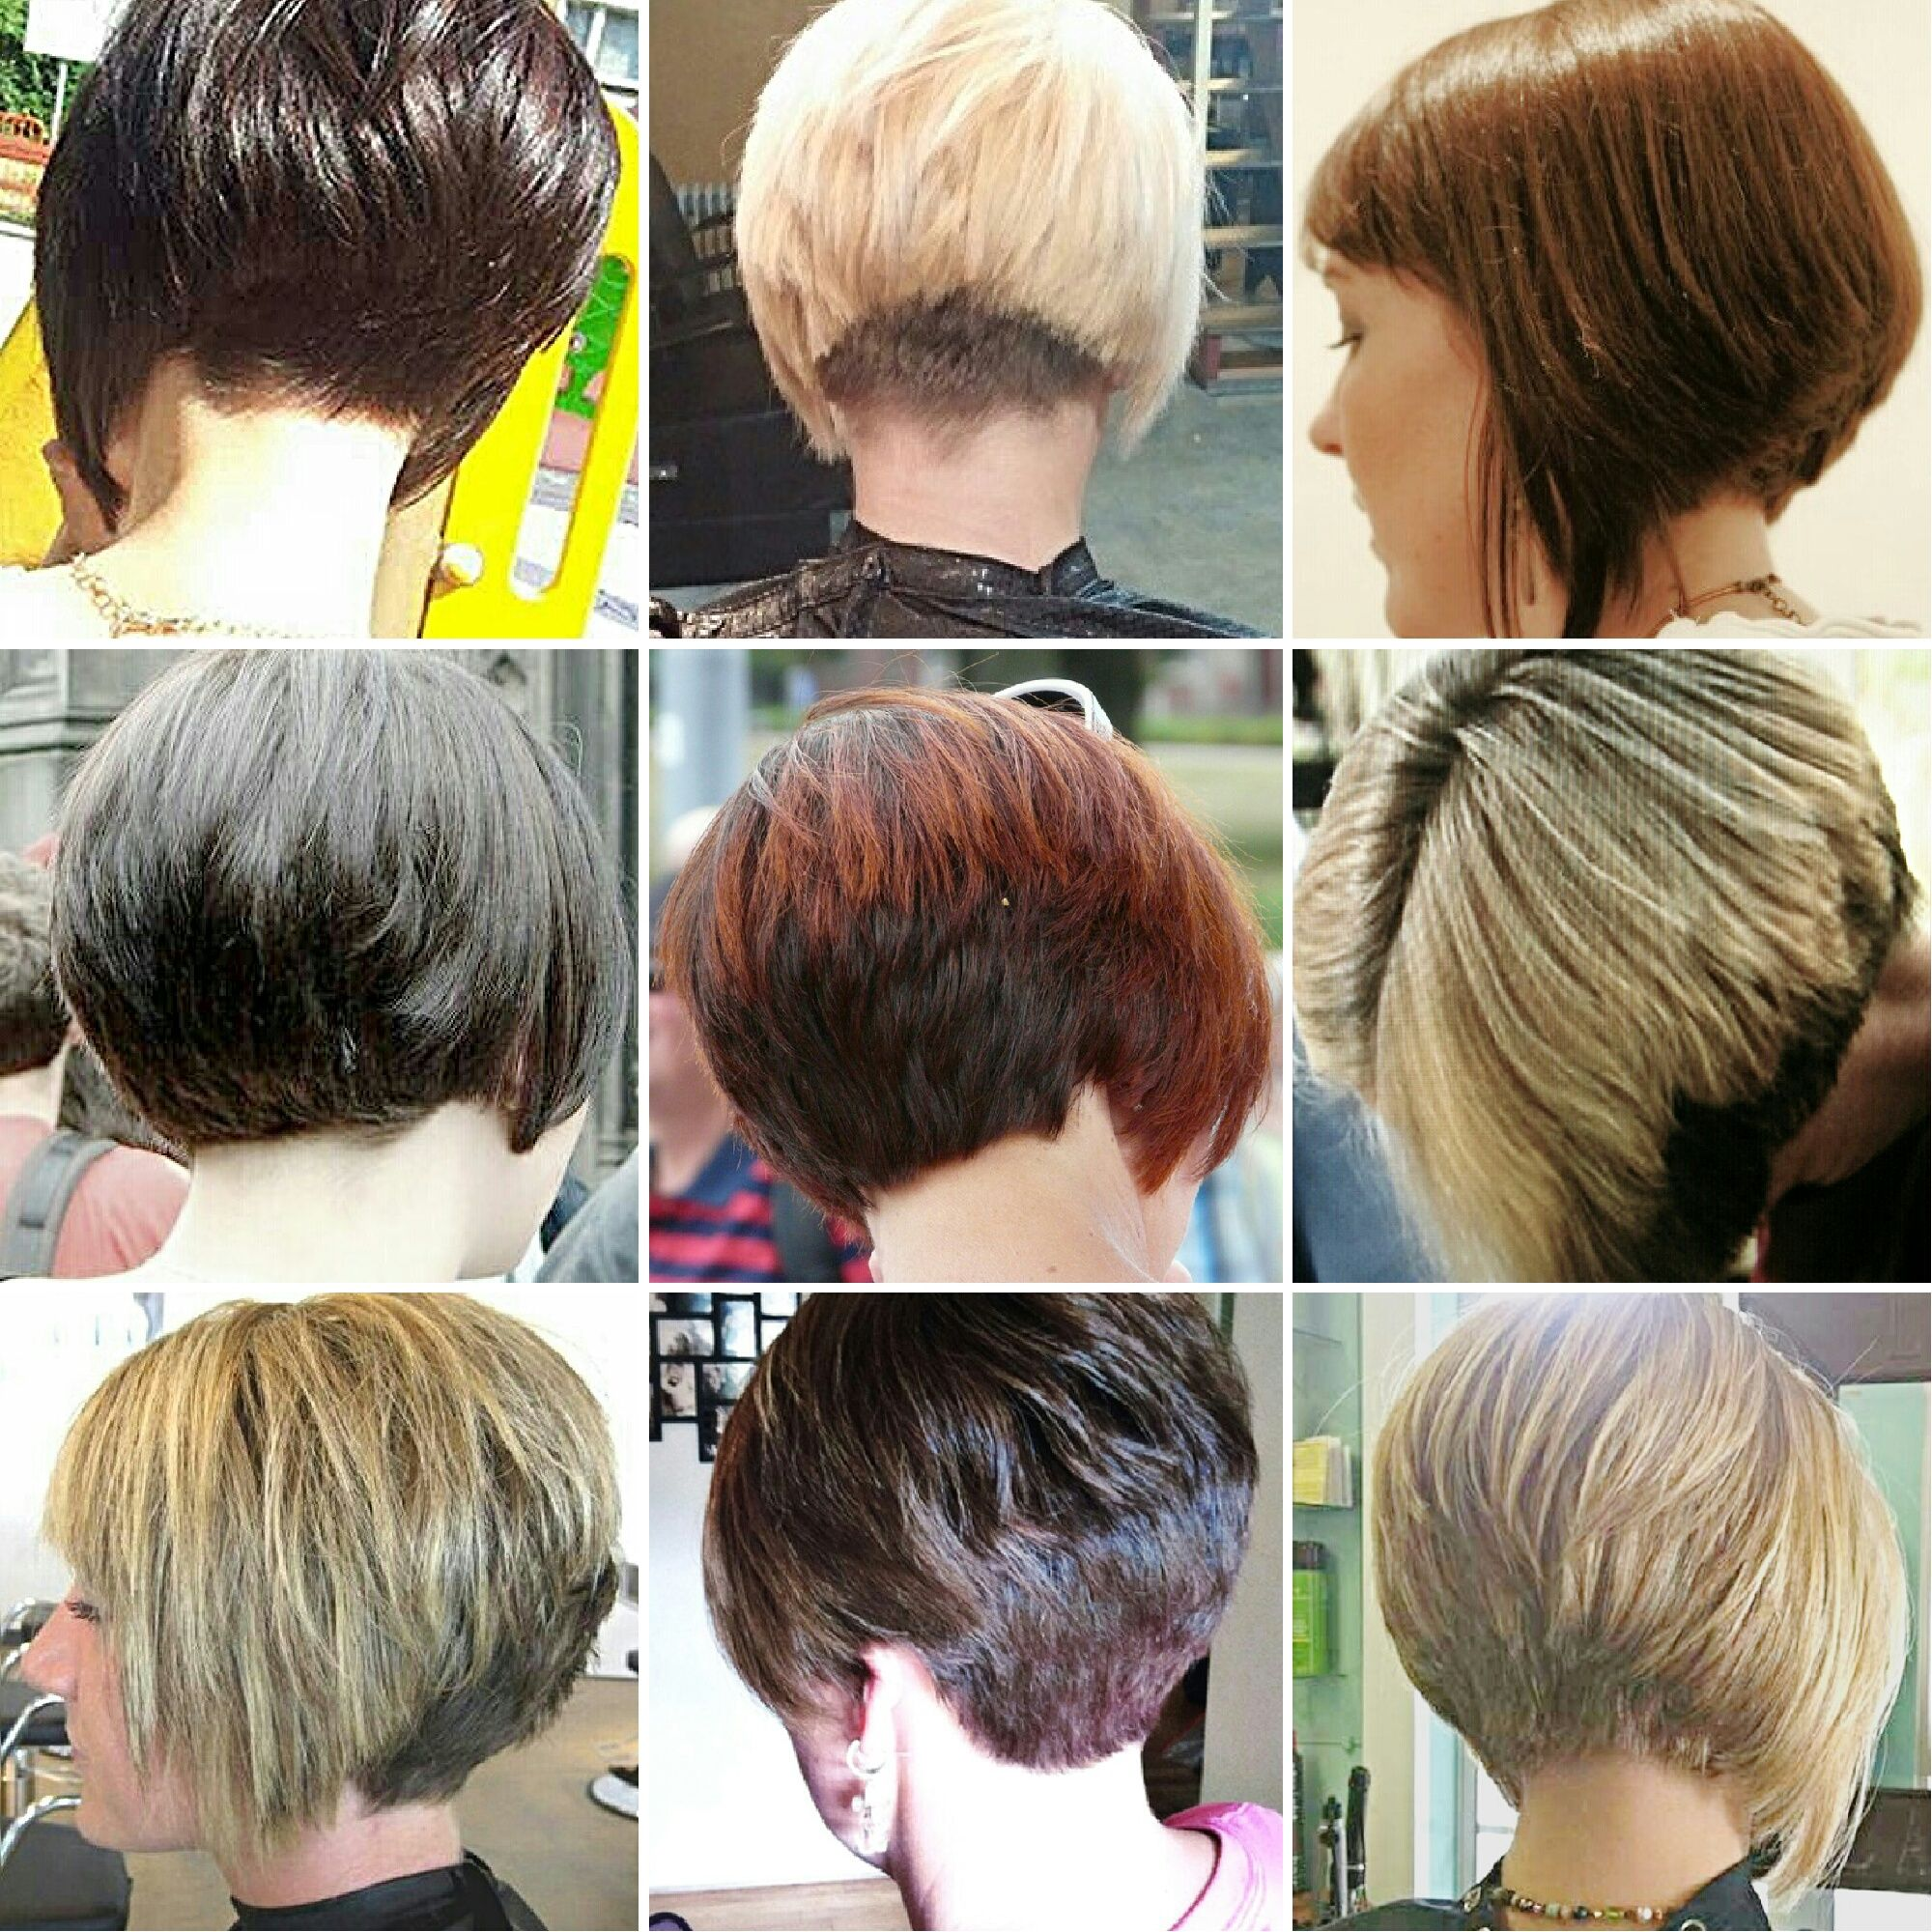 Pics photos victoria beckham bob haircut back view - Another Collage Of Short Bobbed Hairstyles With Stacked Or Buzzed Nape Originally Uploaded Maybe